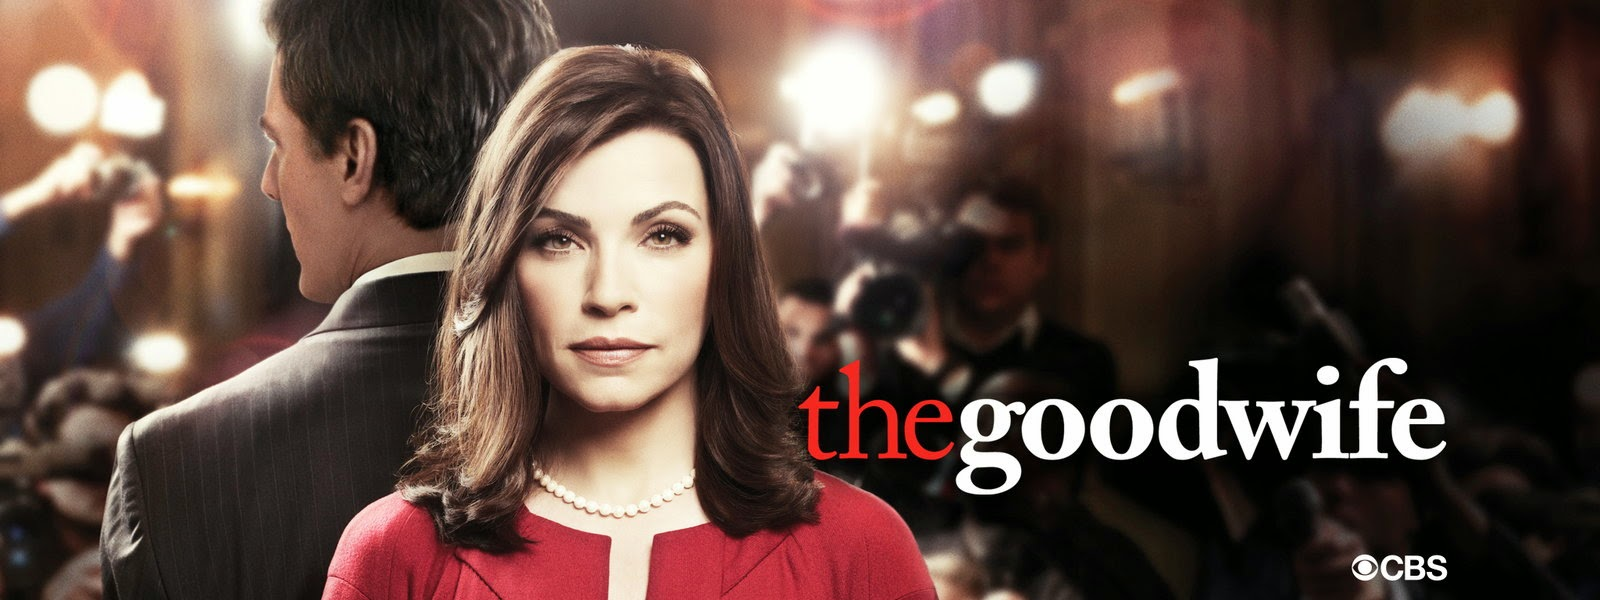 POLL : What was your Favourite Episode of The Good Wife this Season?